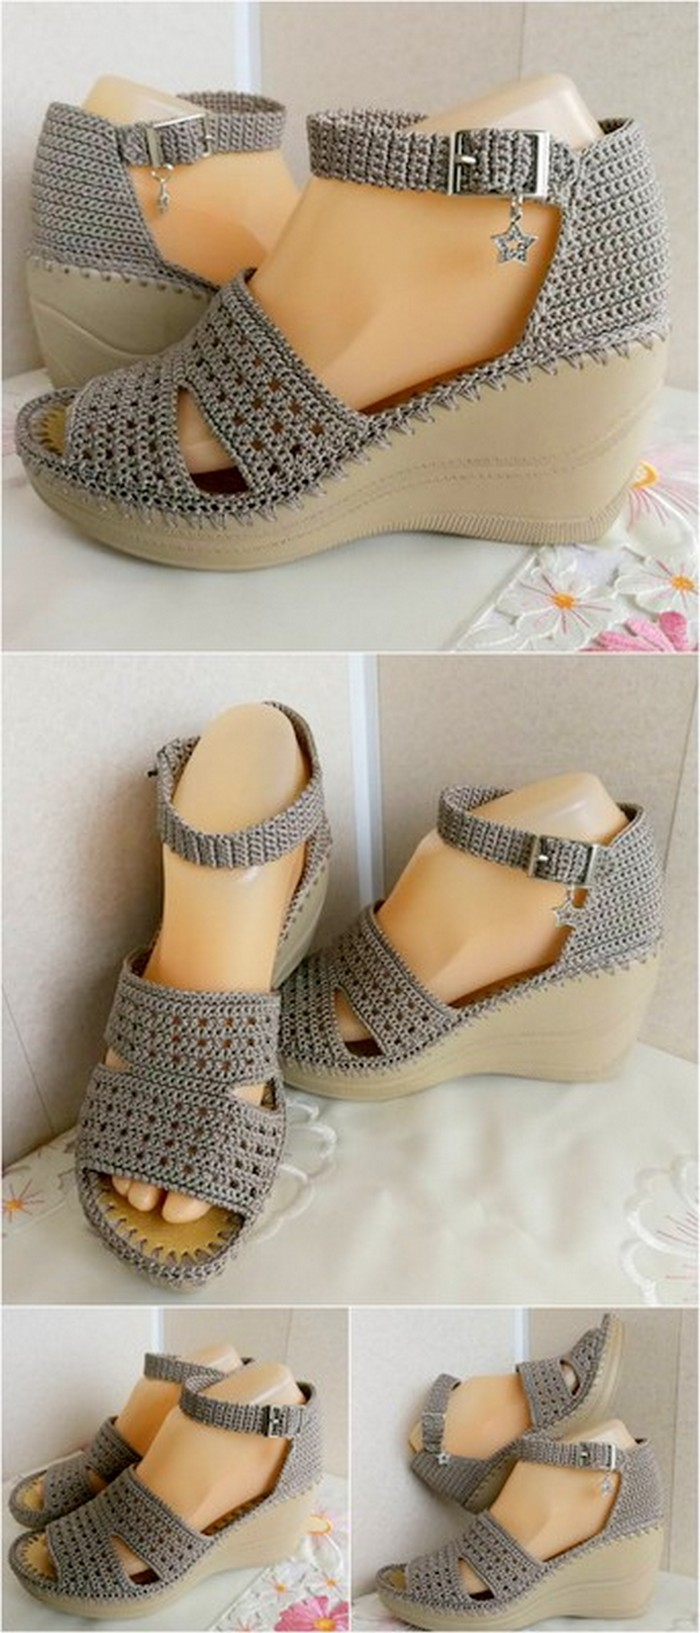 interesting crochet shoes design